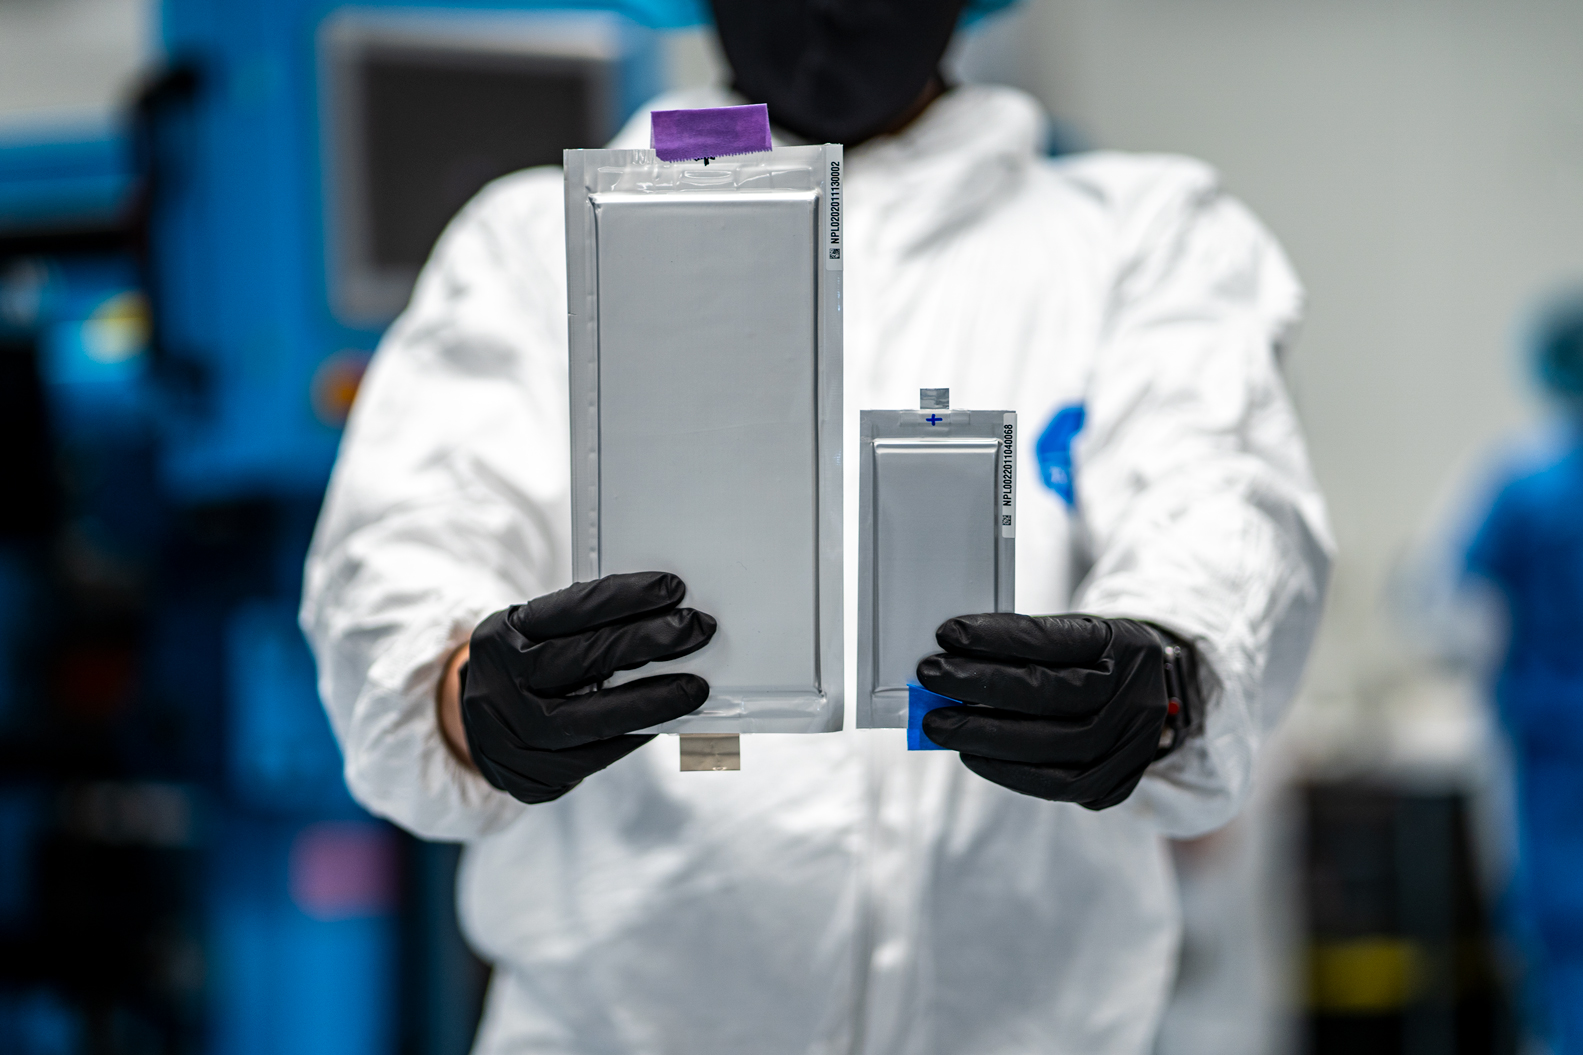 Solid Power's 22-layer, 20Ah all solid-state lithium metal cell compared to the company's first-generation 10-layer, 2Ah cell.